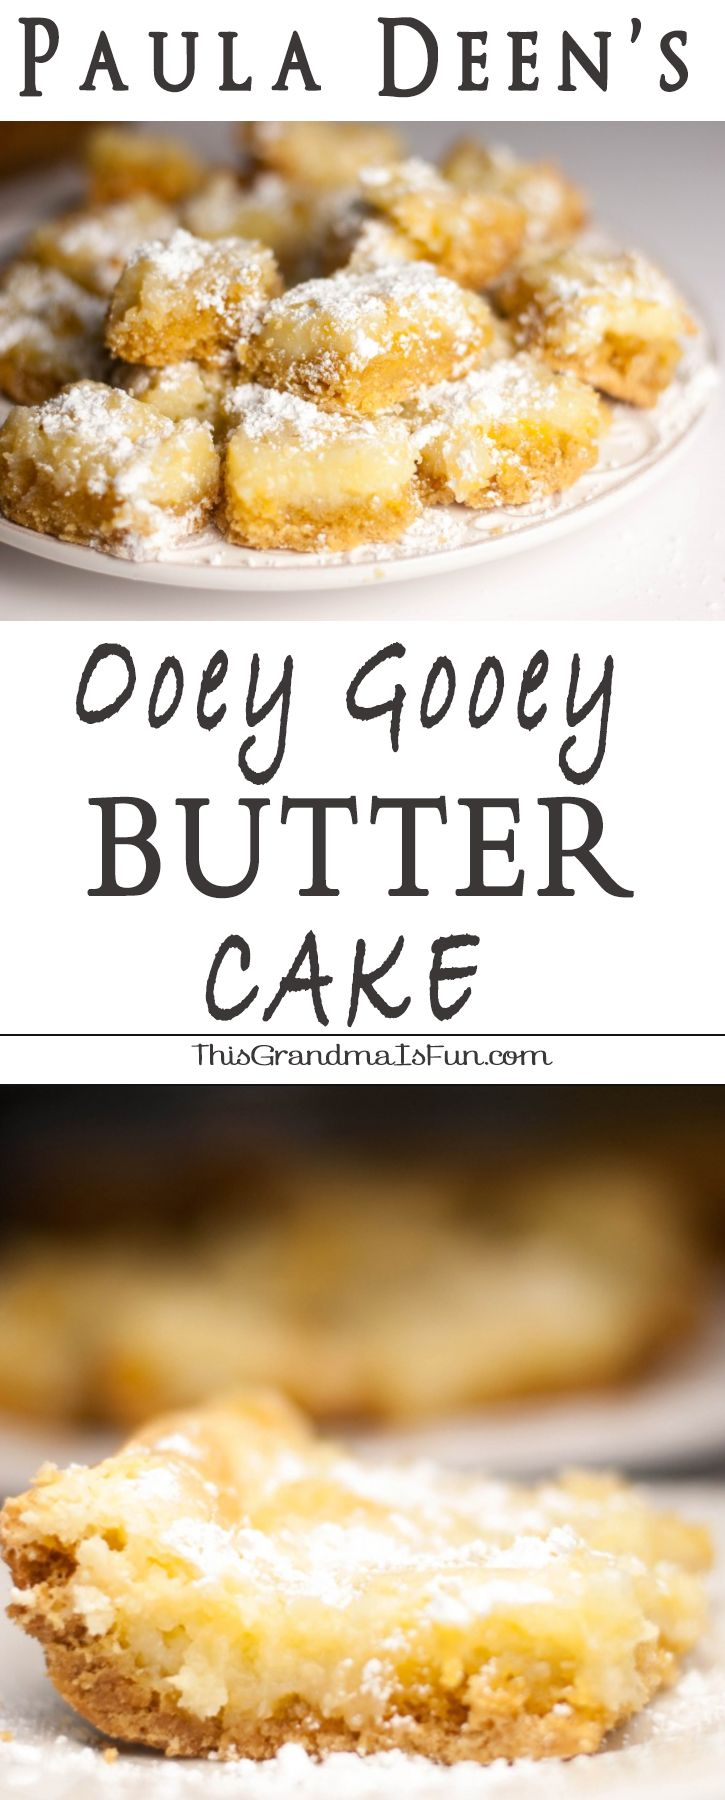 "Paula Deen's Ooeg Gooey Butter Cake When you hear the word ""butter"" who do you think of?  Paula Deen?  Me too.  I have never made a single recipe from Paula Deen (sorry Paula!  I still like ya'll!) but I have seen this Paula Deen's Ooey Gooey Butter Cake pinned so many times that I couldn't resist.  I have also seen this pinned as ""The Original Neiman Marcus Bars"" and ""Texas Gold Bars"".  Whatever you call them, they ARE ooey, they ARE gooey and they definitely have a rich, buttery flavor…"